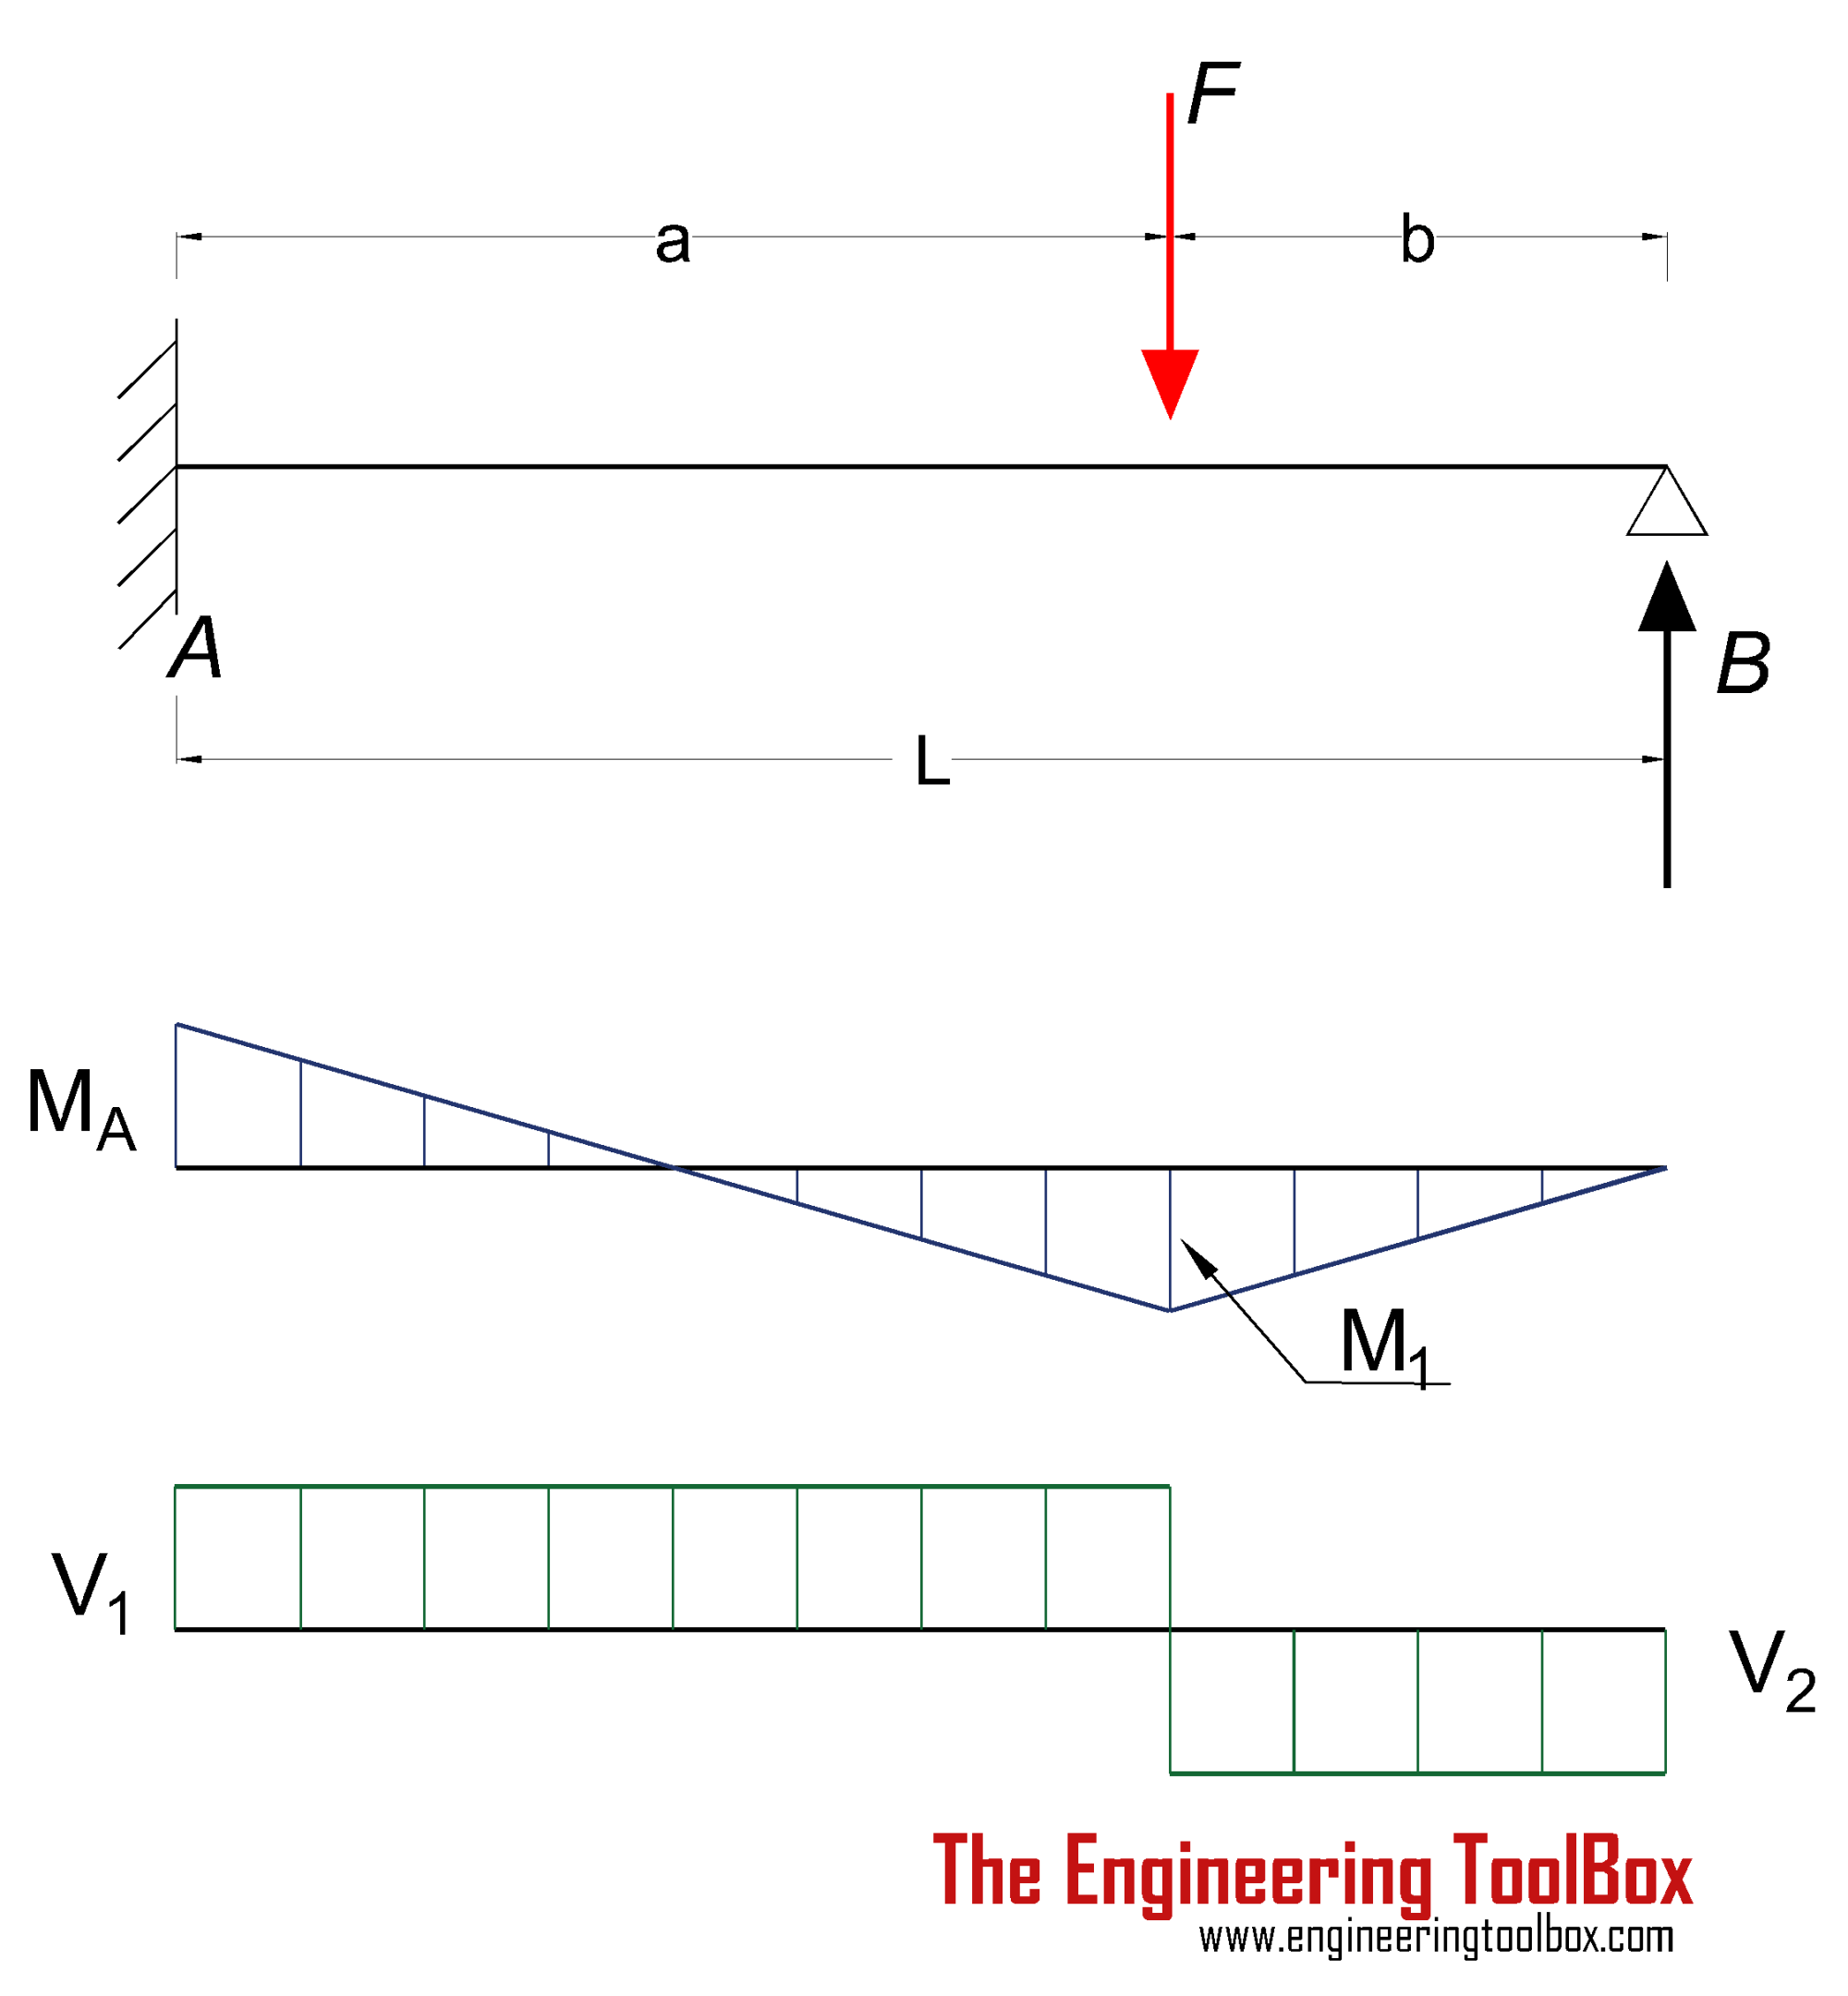 hight resolution of bending moment diagram for cantilever beam with point load new beams fixed at one end and